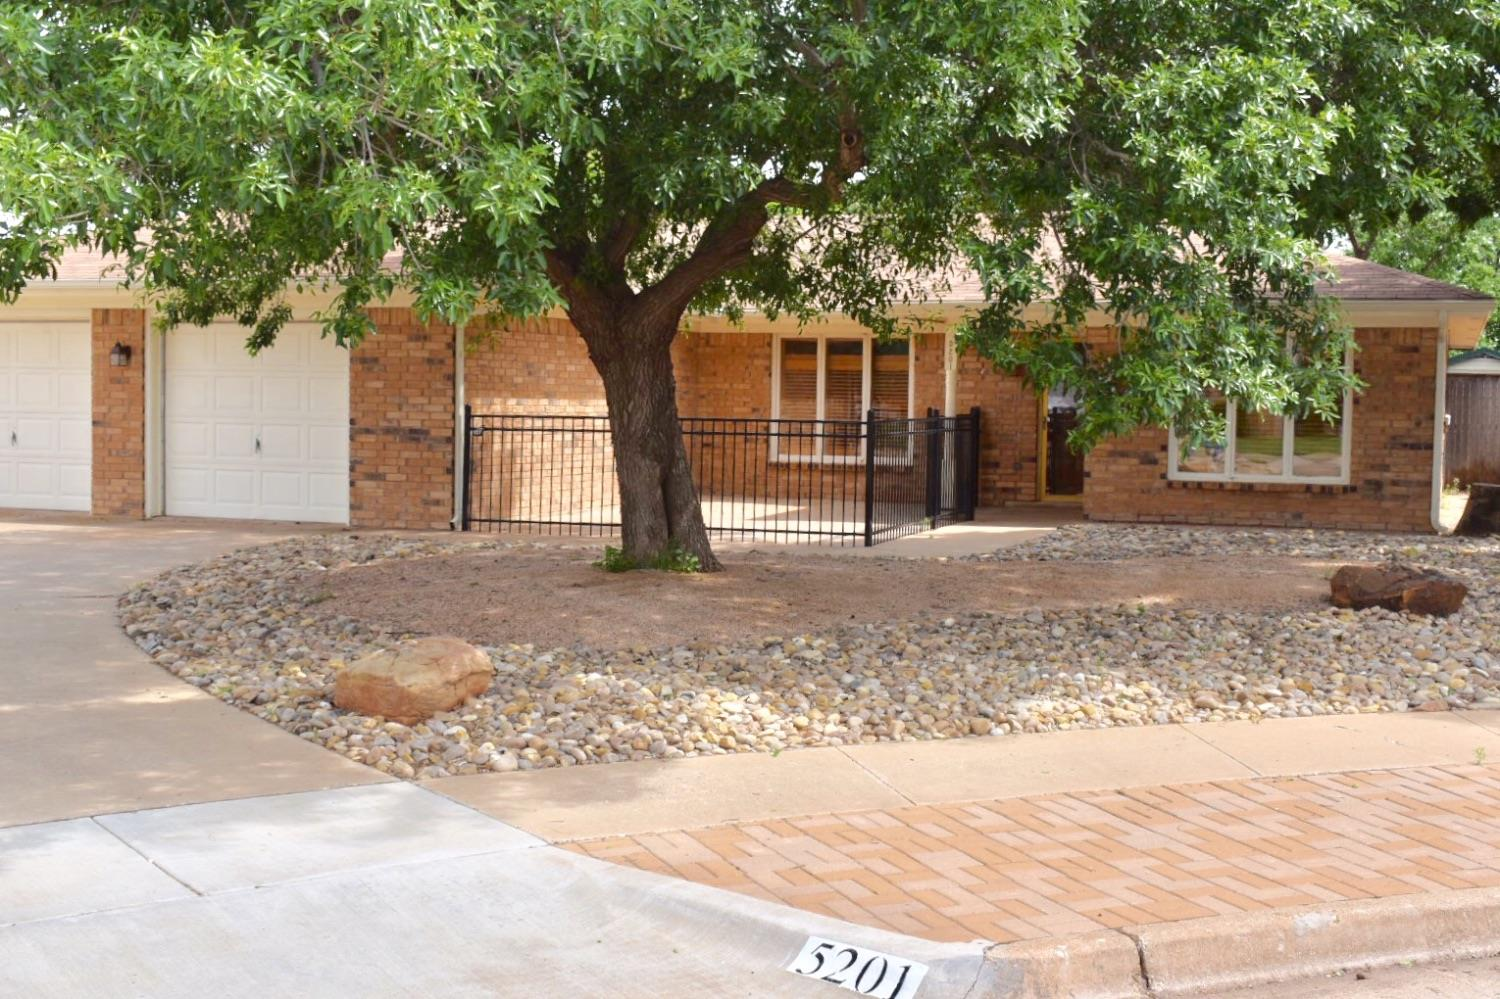 5201 92nd Street, Lubbock in Lubbock County, TX 79424 Home for Sale